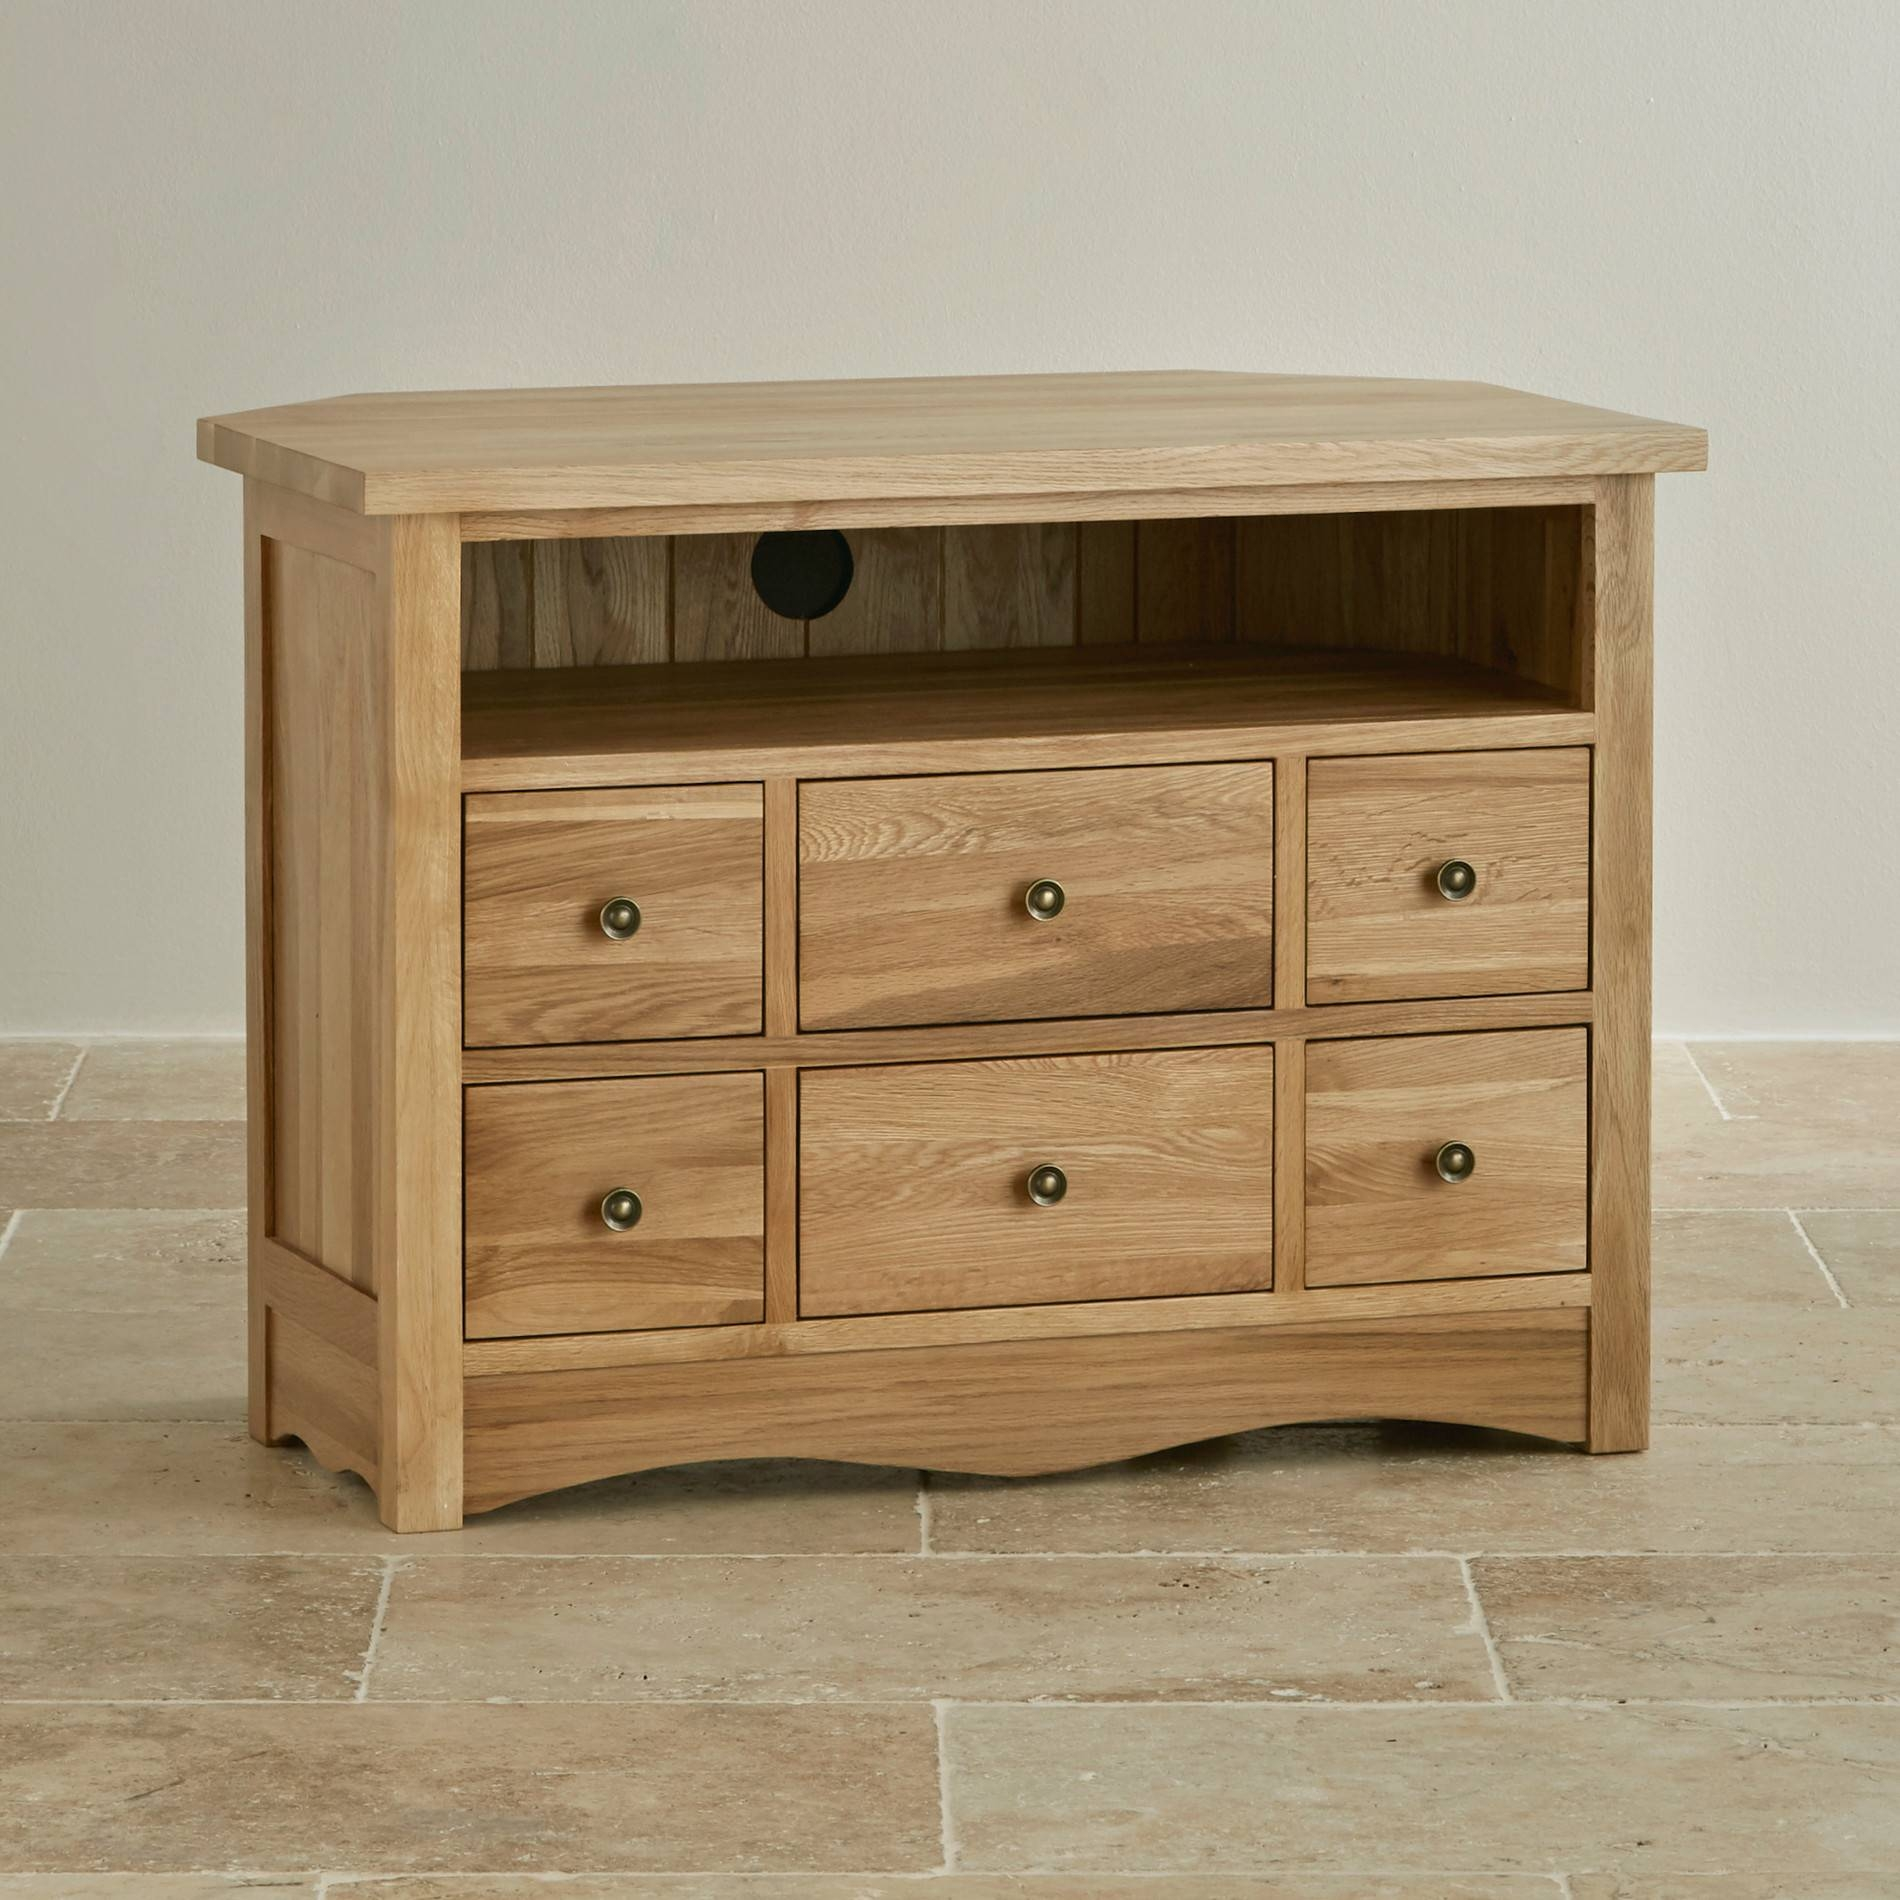 Cairo Corner Tv Cabinet In Natural Solid Oak | Oak Furniture Land with Tall Tv Cabinets Corner Unit (Image 2 of 15)